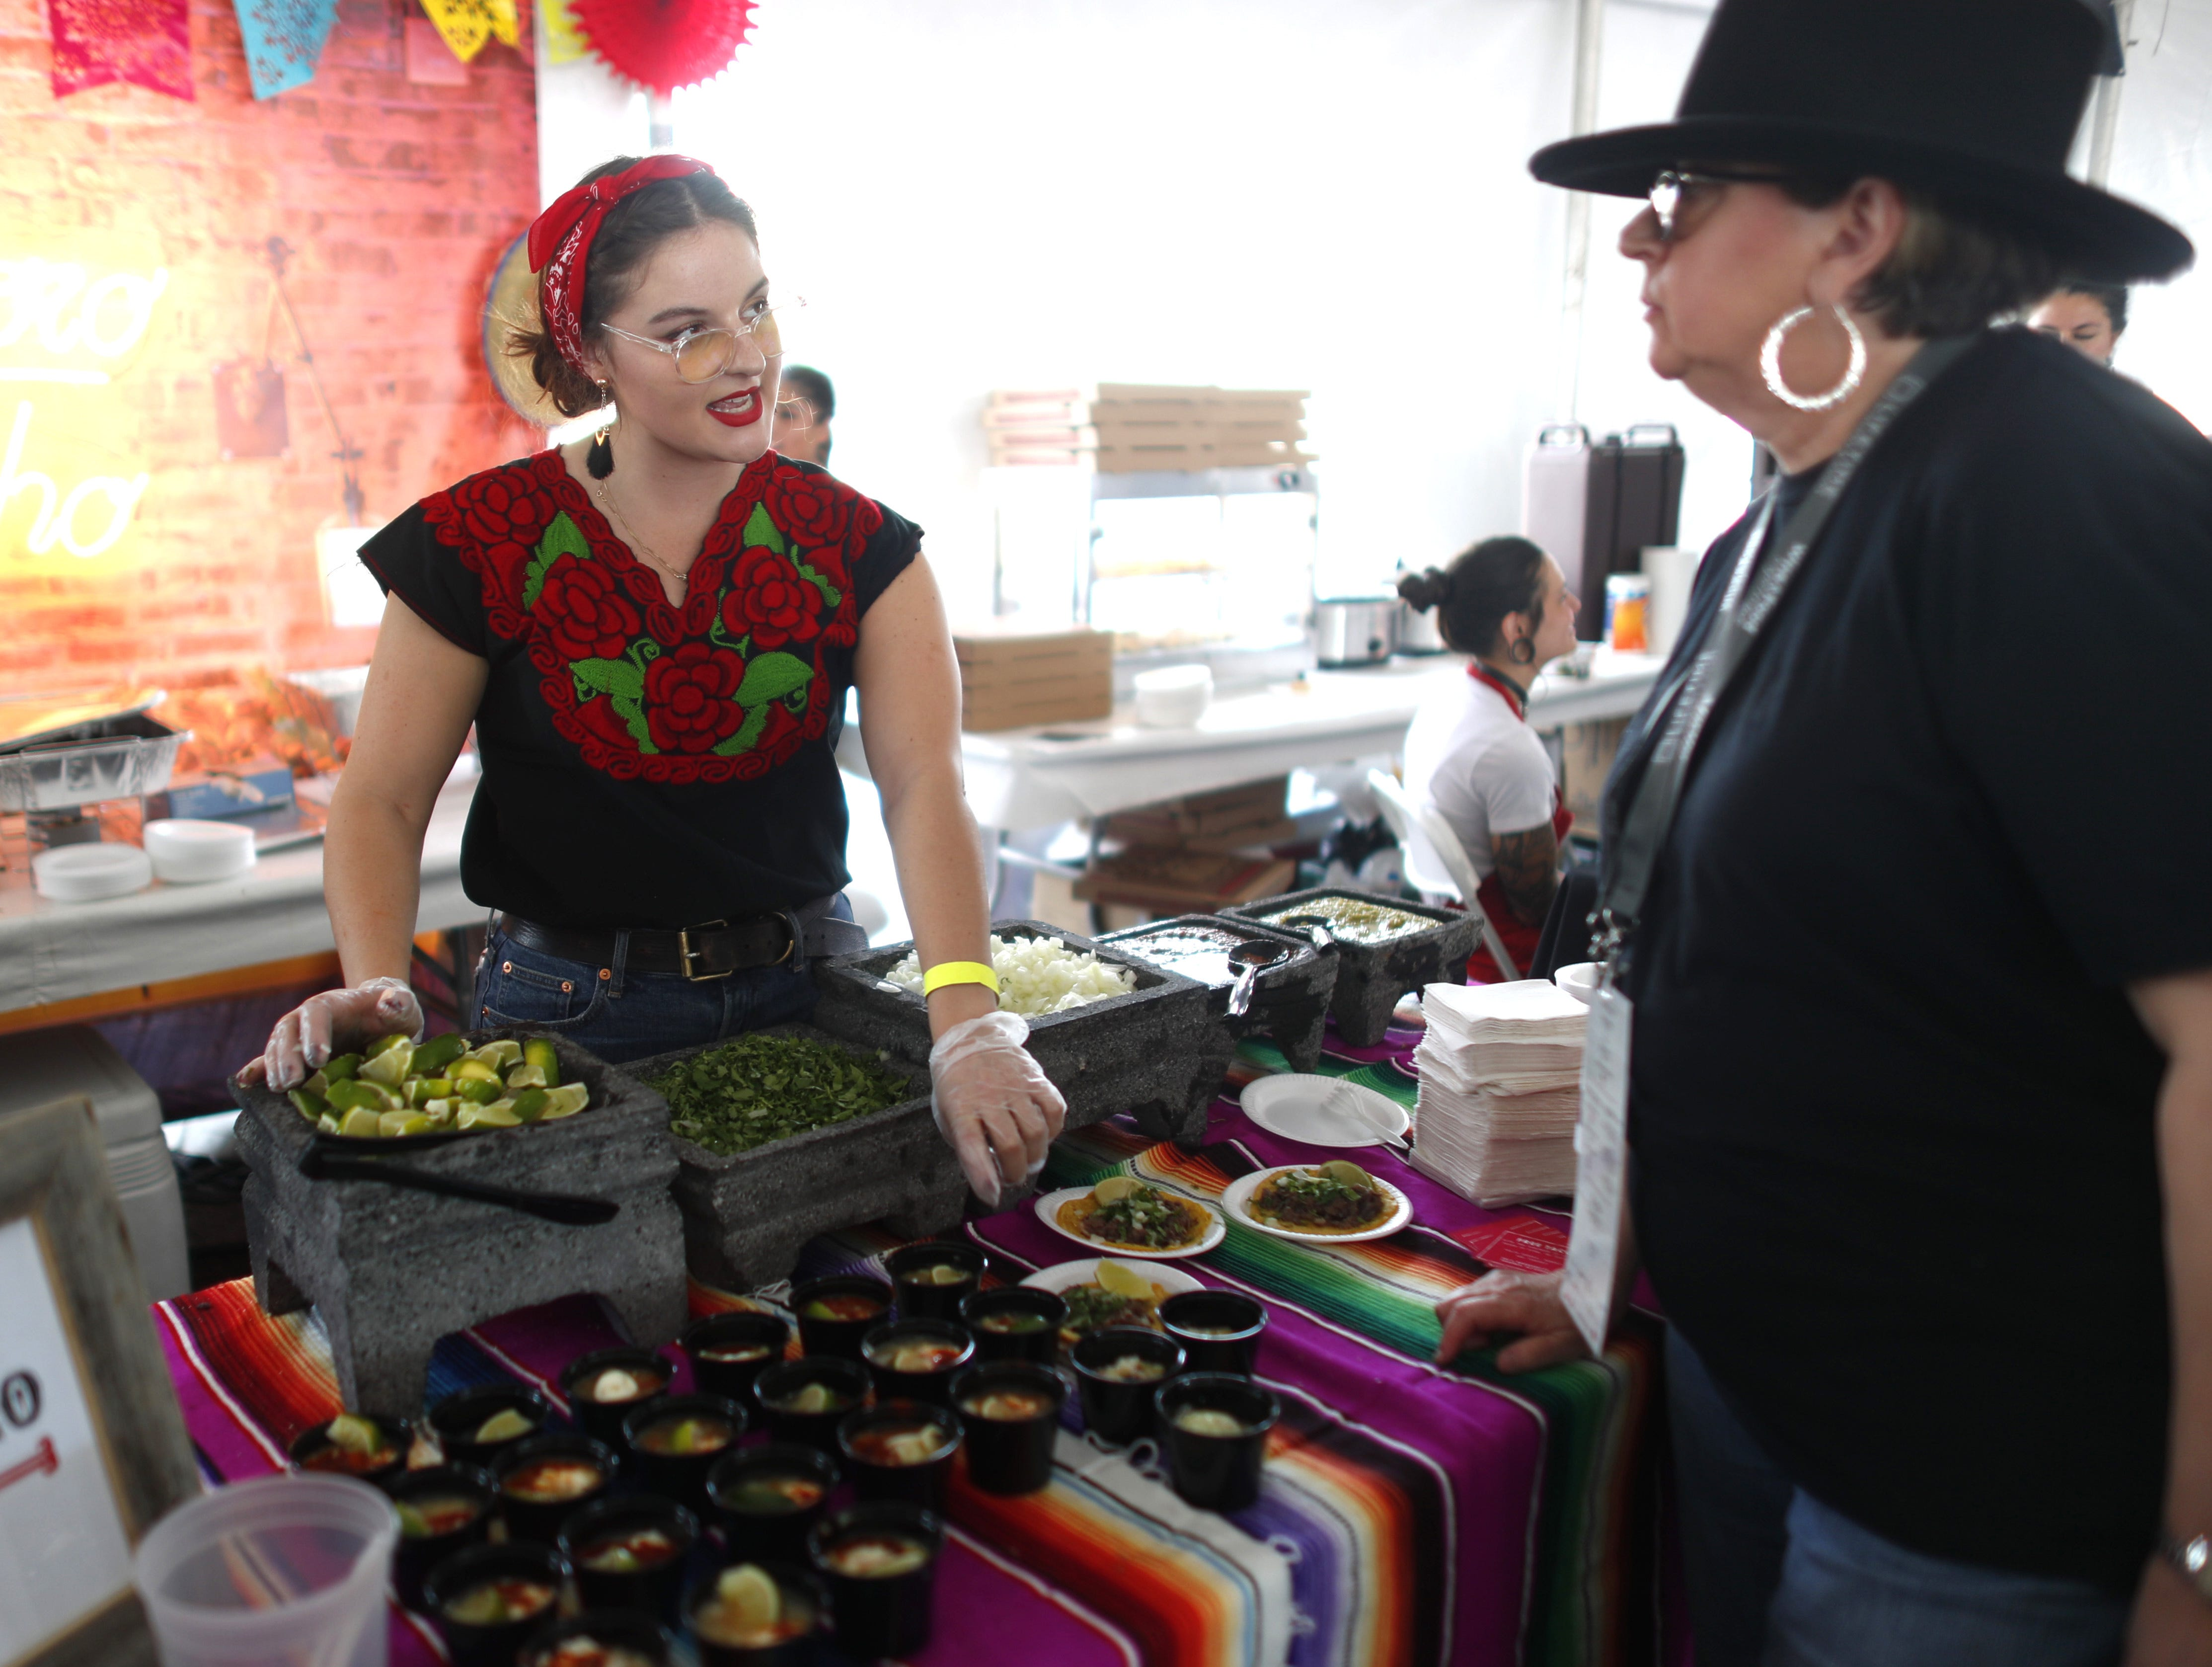 Amelia Goe serves food for Taco Chelo during the azcentral Wine & Food Experience at WestWorld of Scottsdale, Ariz. on Nov. 4, 2018.